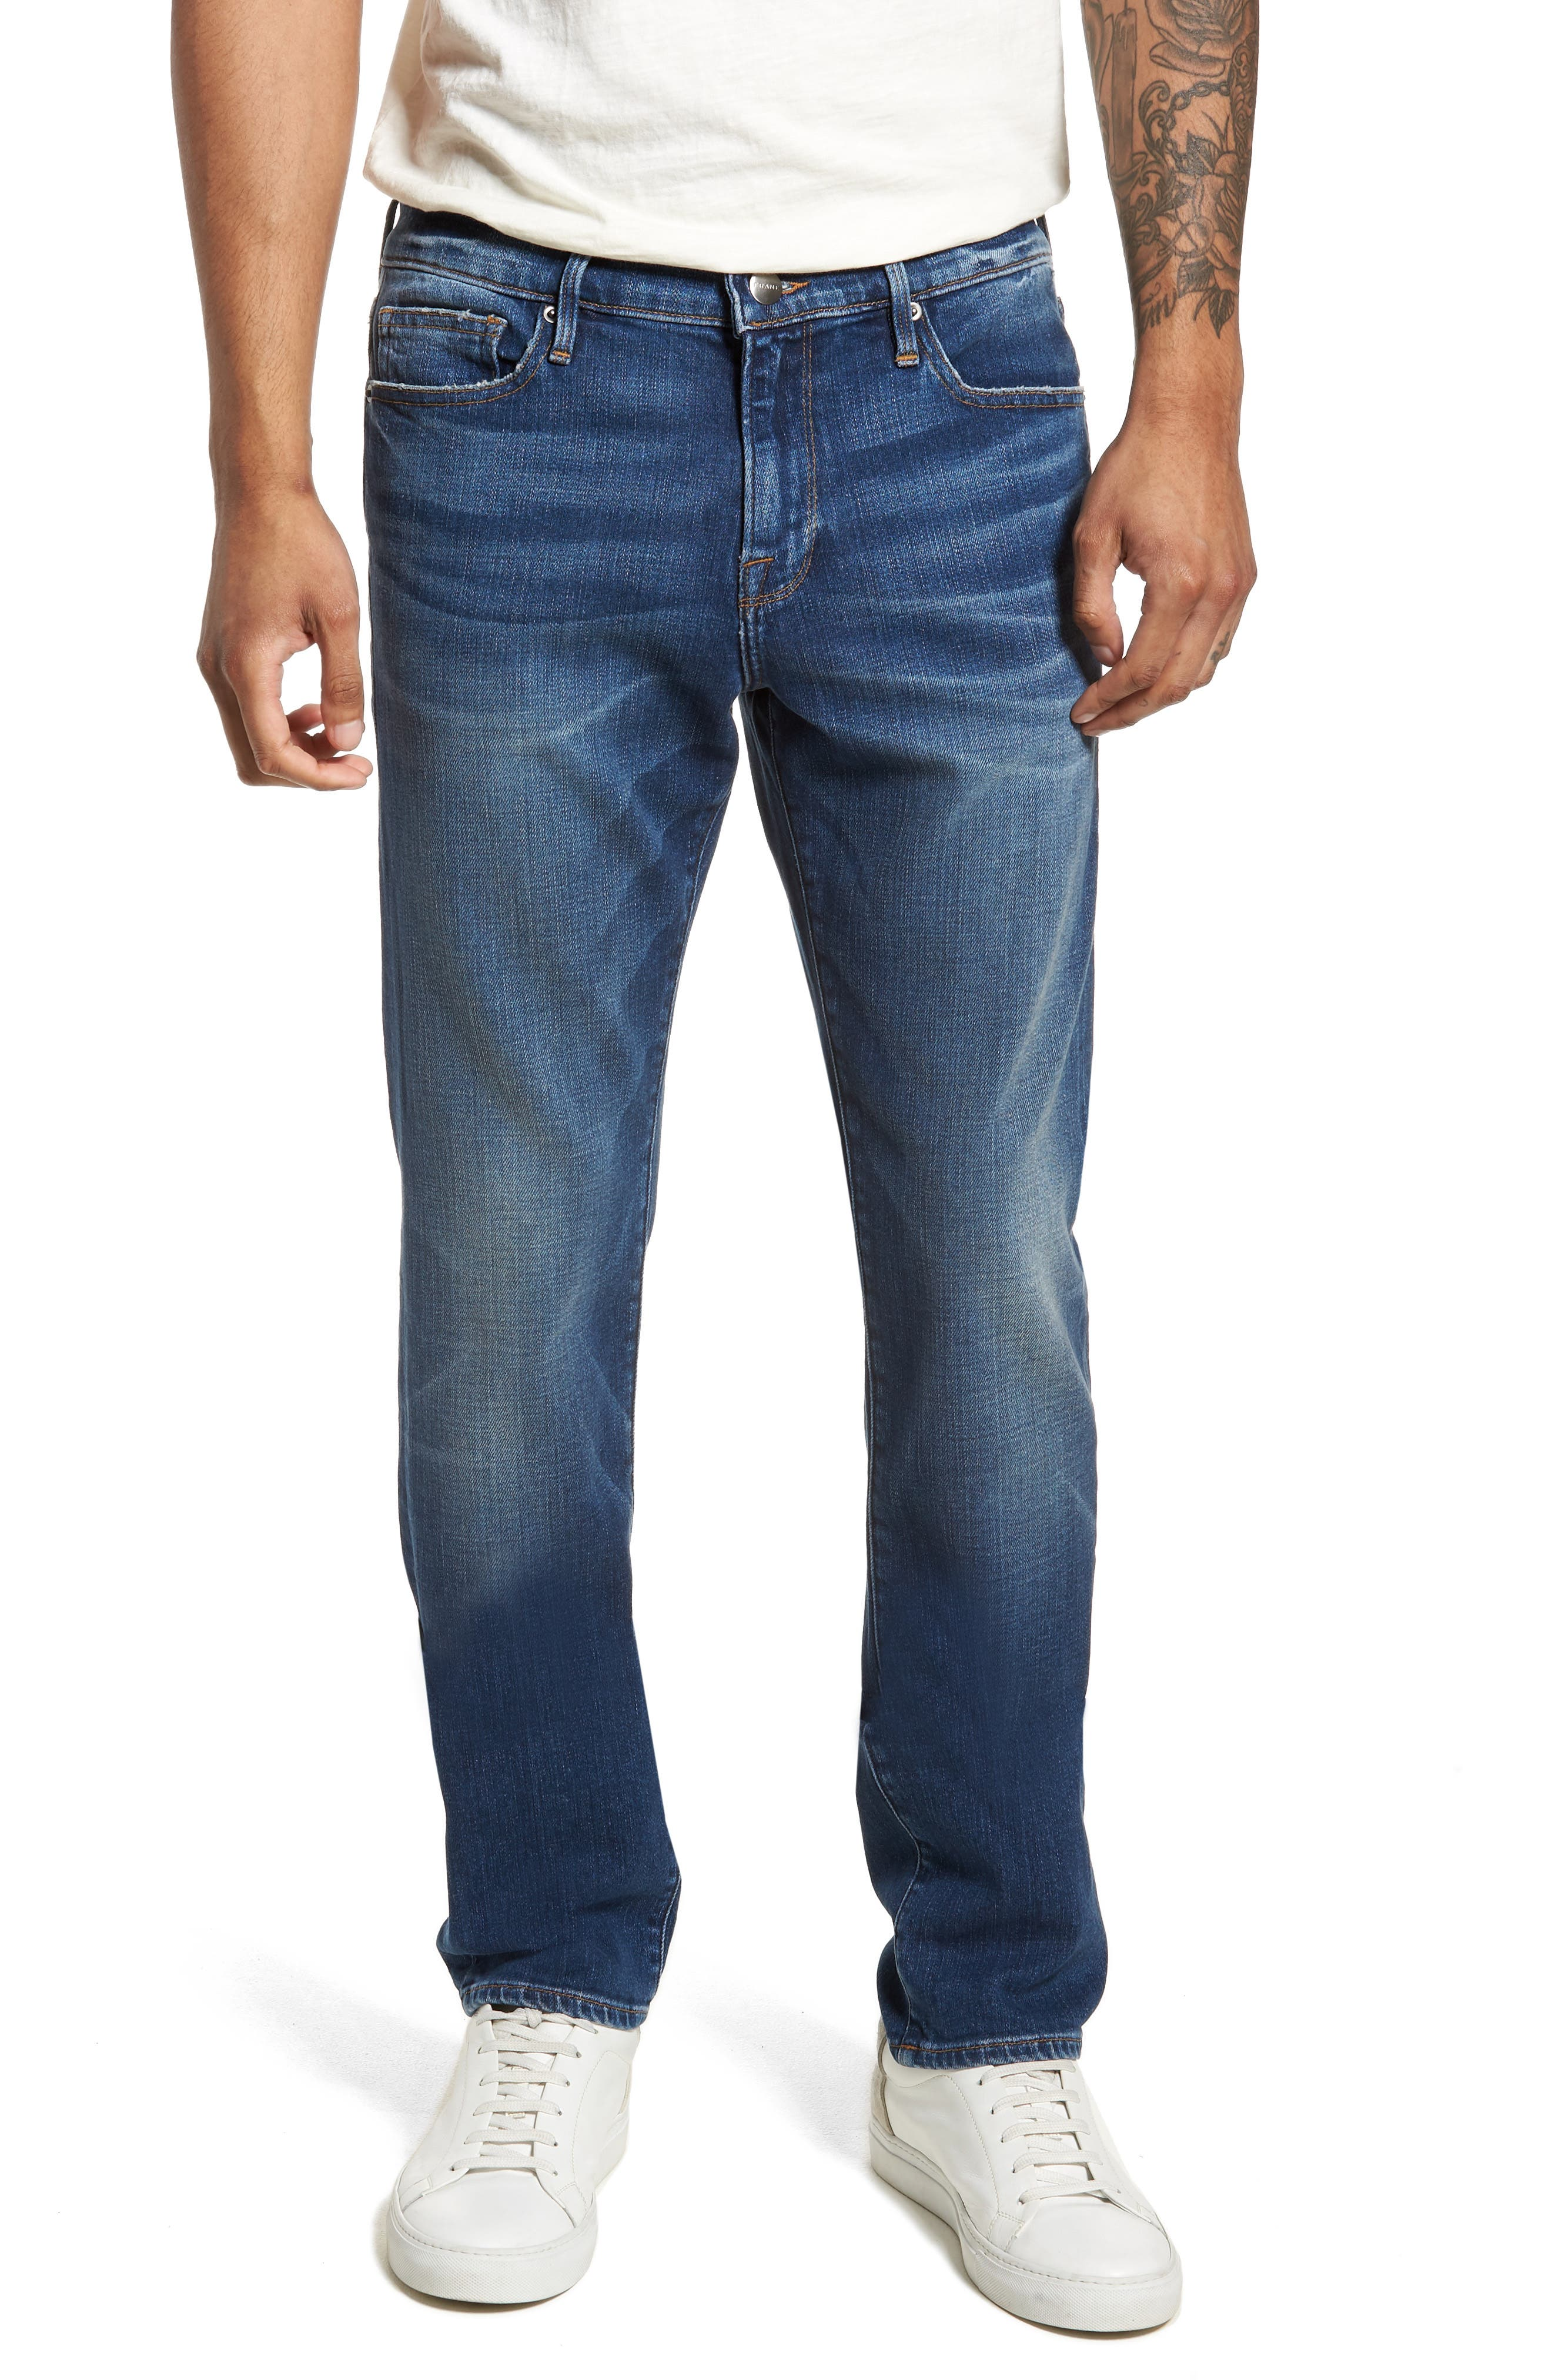 L'Homme Skinny Fit Jeans,                             Main thumbnail 1, color,                             420